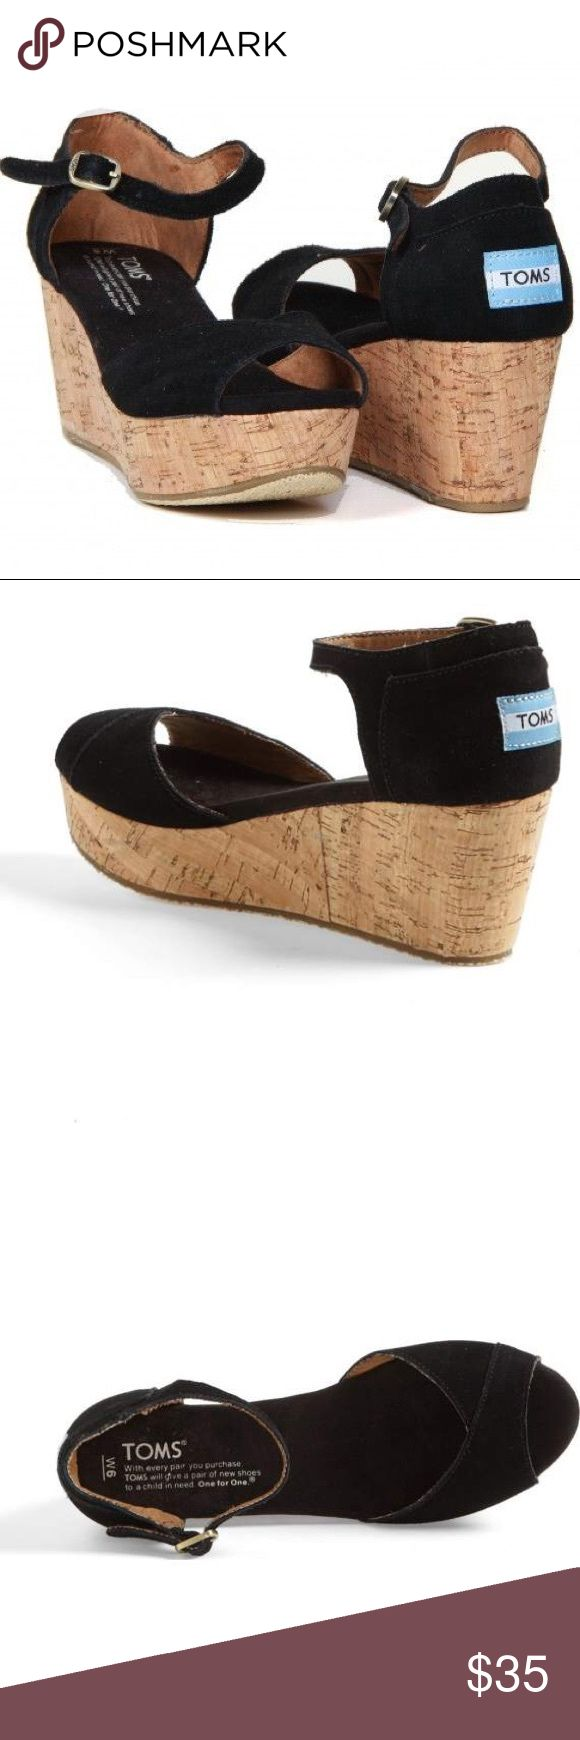 """Toms Suede Platform Wedge Sandals in Black Cute black suede platform wedges from Toms. Good condition and only worn a few times.   Suede upper and liner Cork wrapped heel with one small flaw in the back of the left shoe.  Heel height is approximately 2 1/2"""" Original box, Toms flag, and Toms sticker included. Toms Shoes Wedges"""